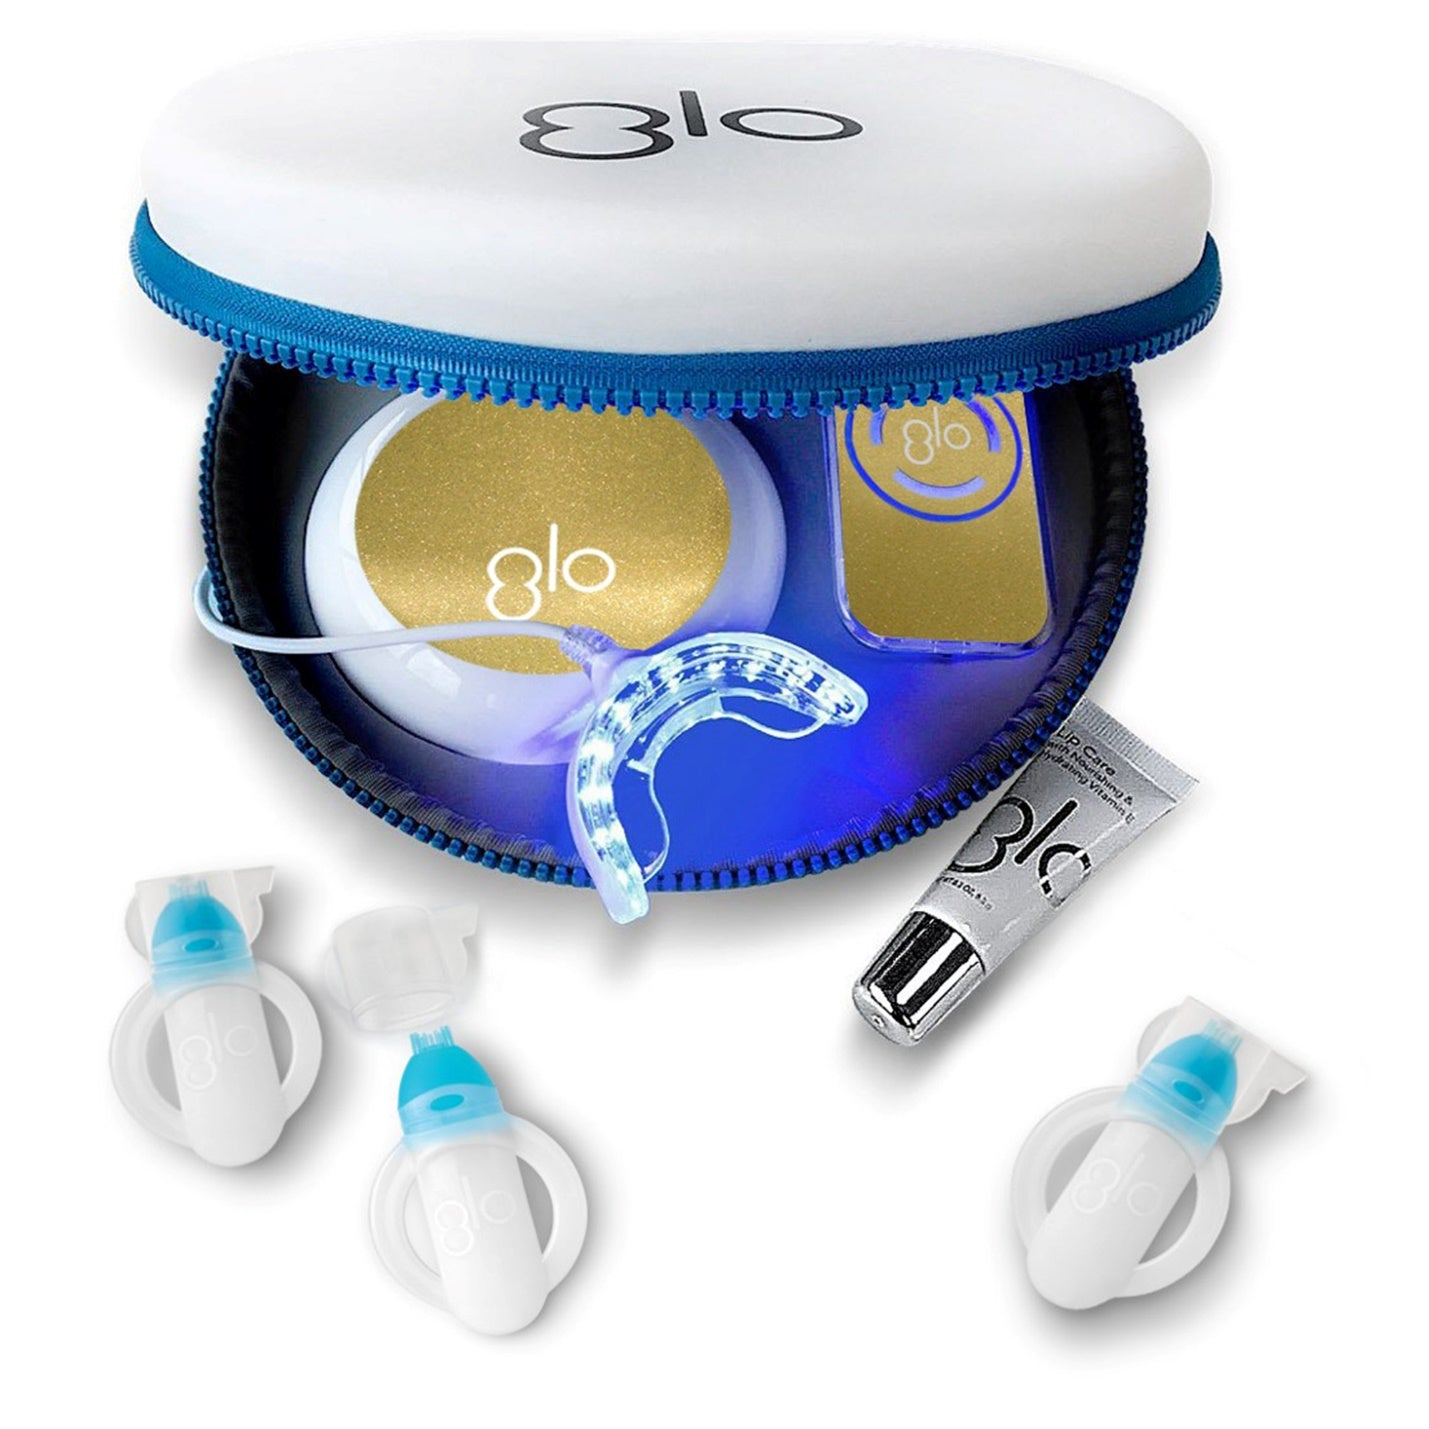 Complete GLO Brilliant teeth whitening system in gold, arranged in a round storage container.